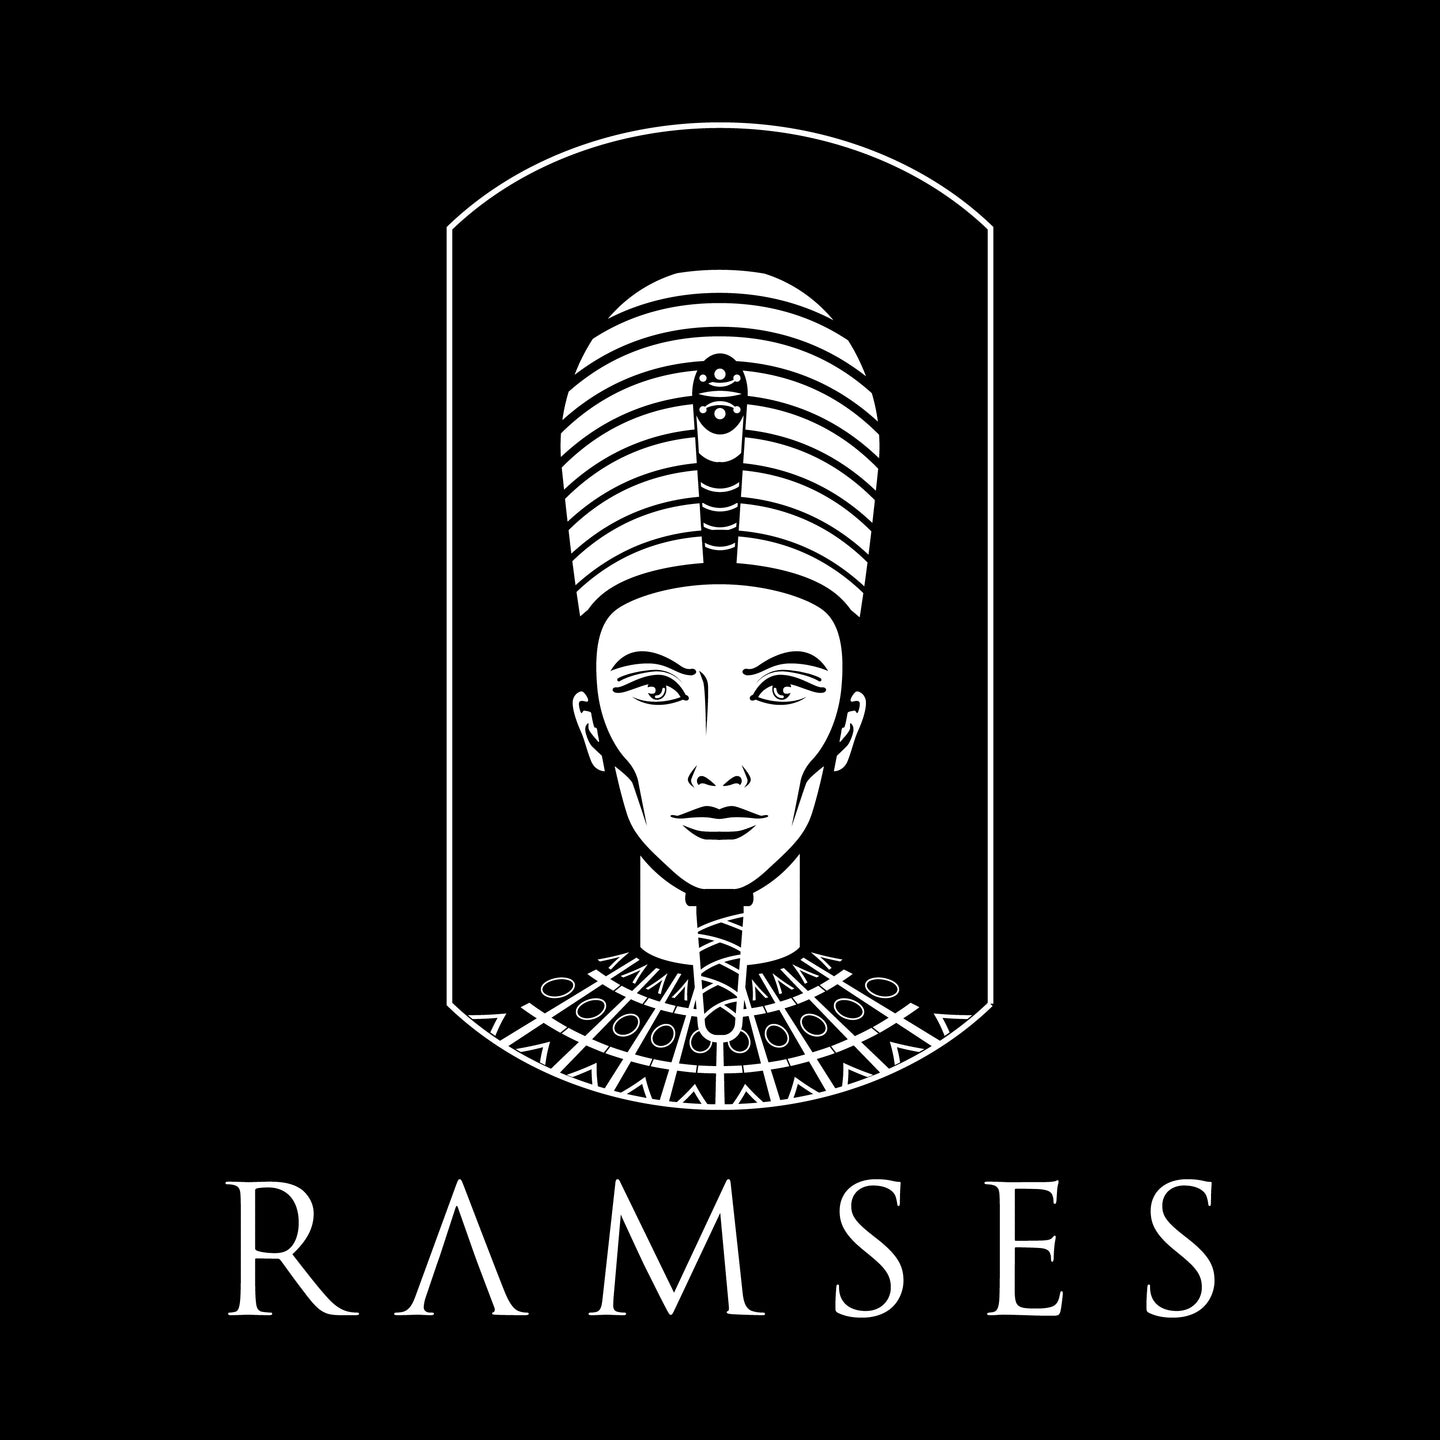 Ramses Clothing Company